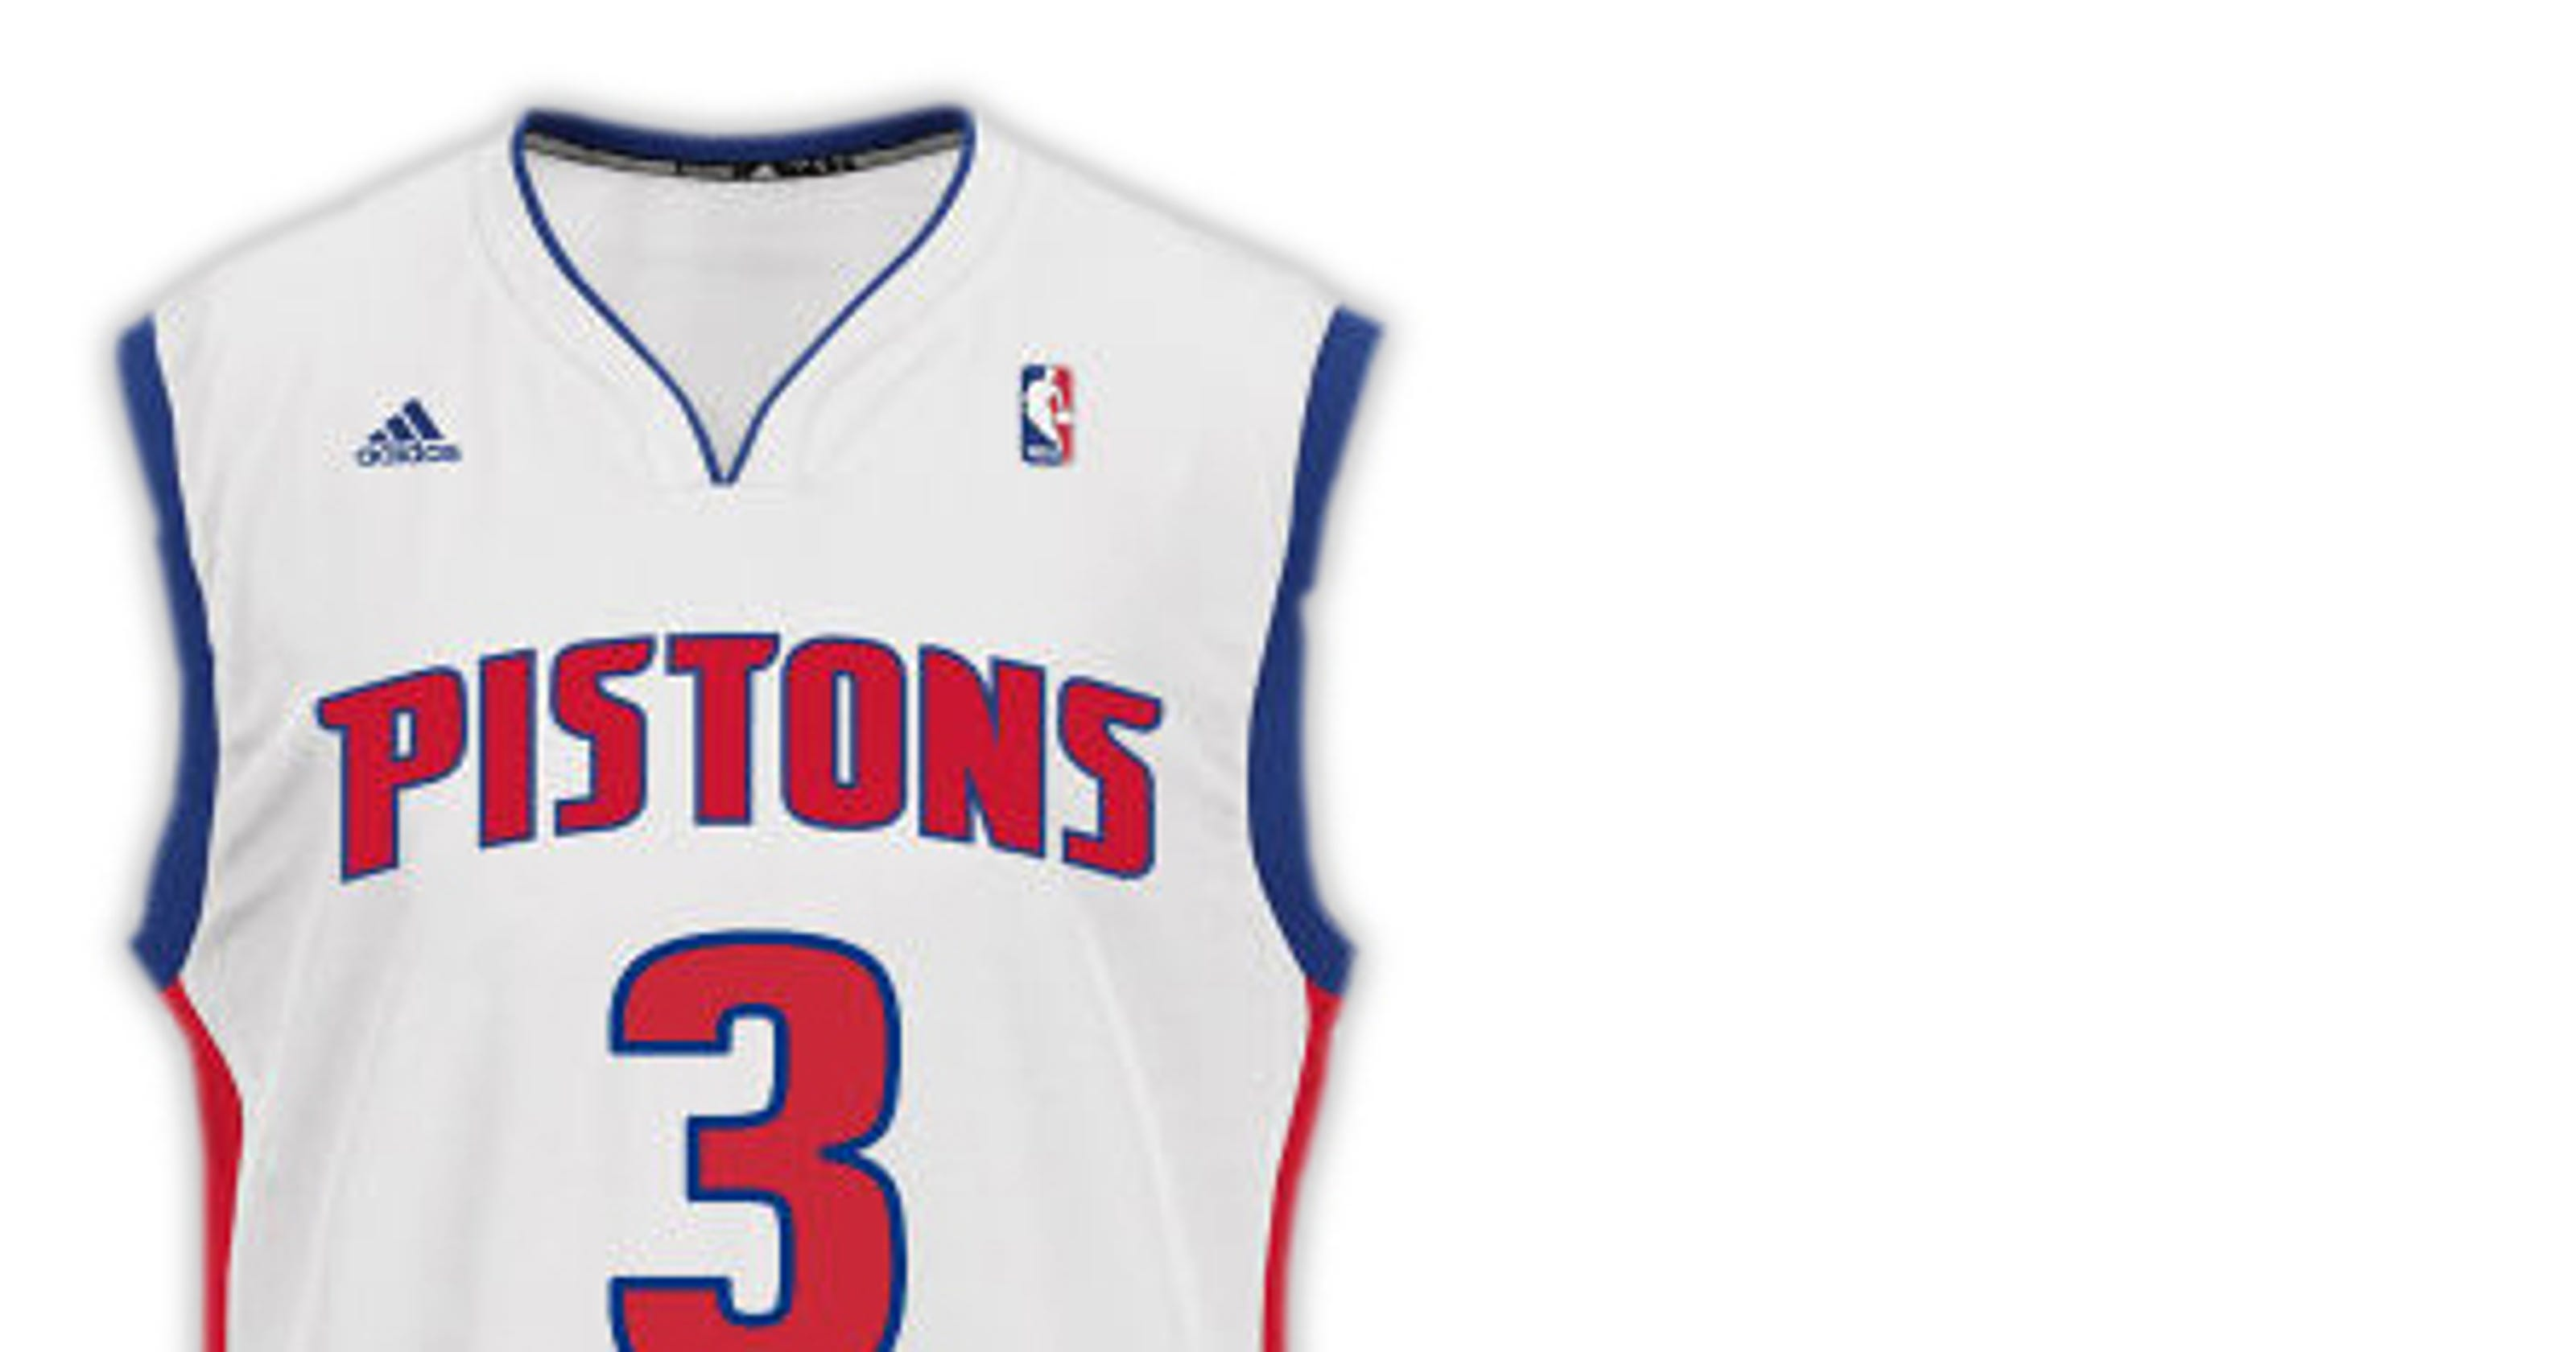 4c1a2a95f These Detroit Pistons mock-up uniforms look pretty awesome